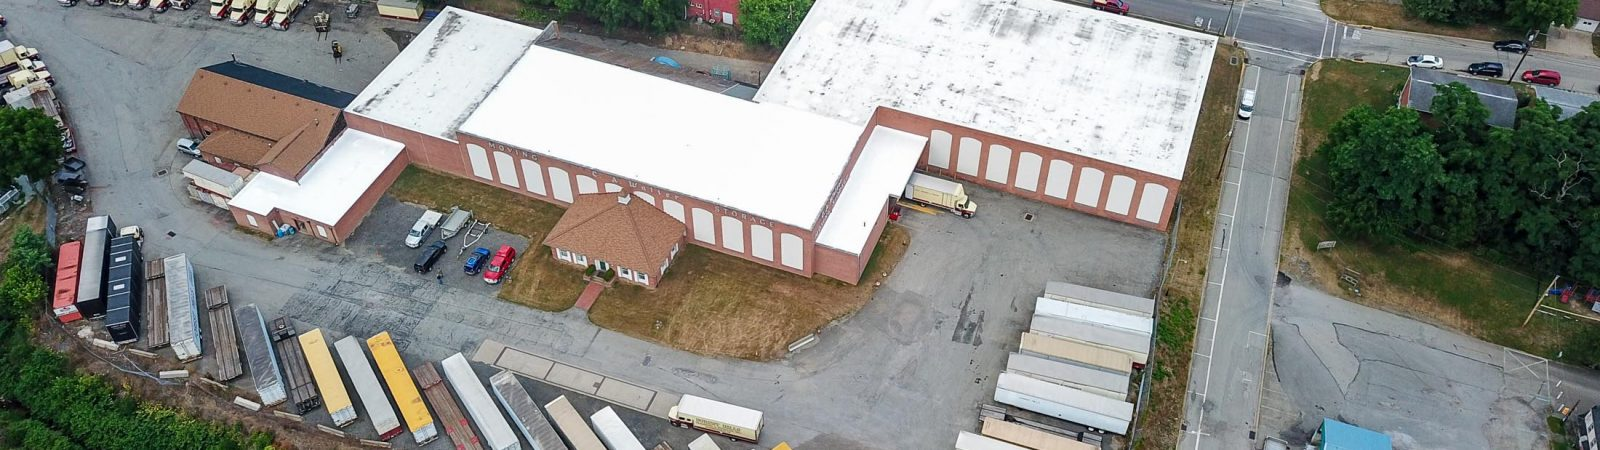 50,000 Spray Foam Roofing Project in Greensburg, PA